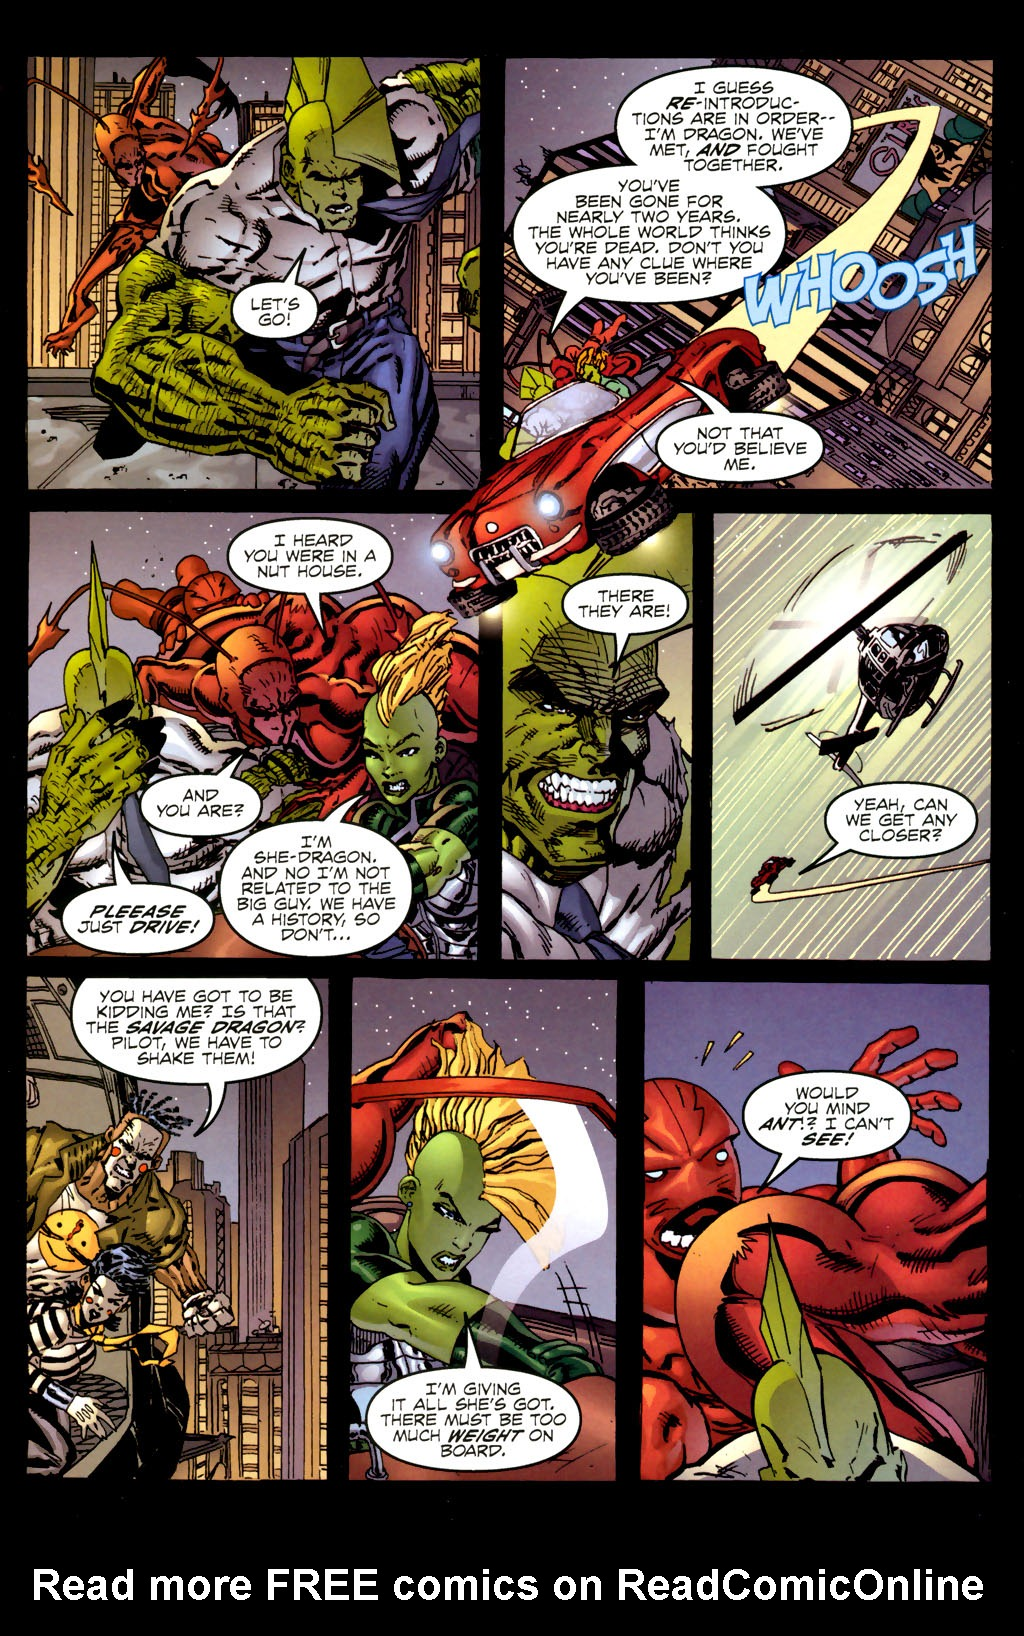 Read online Ant comic -  Issue #2 - 20